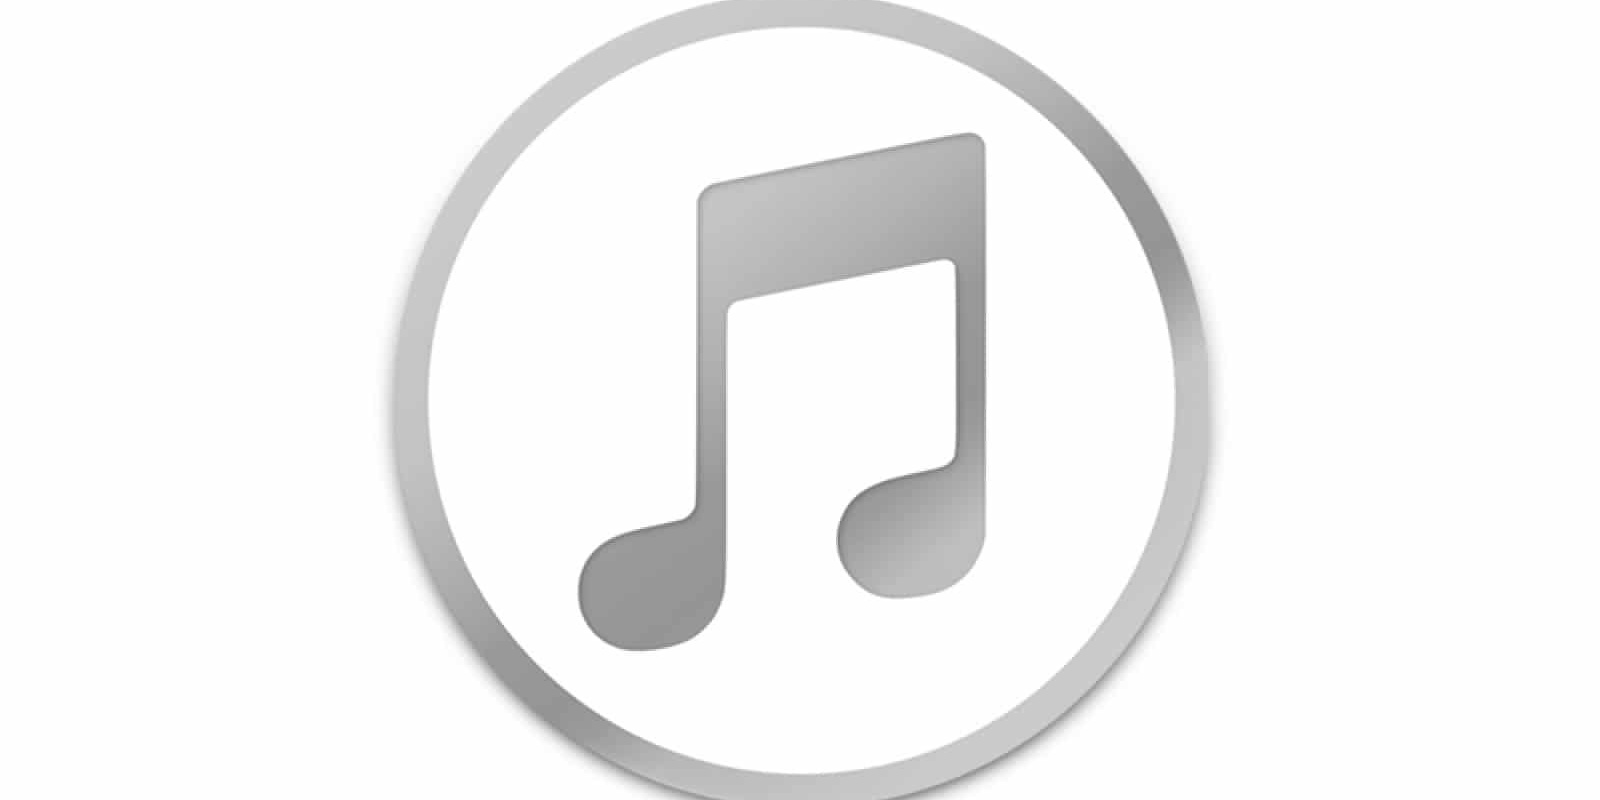 Apple phases out iTunes in latest Mac software update